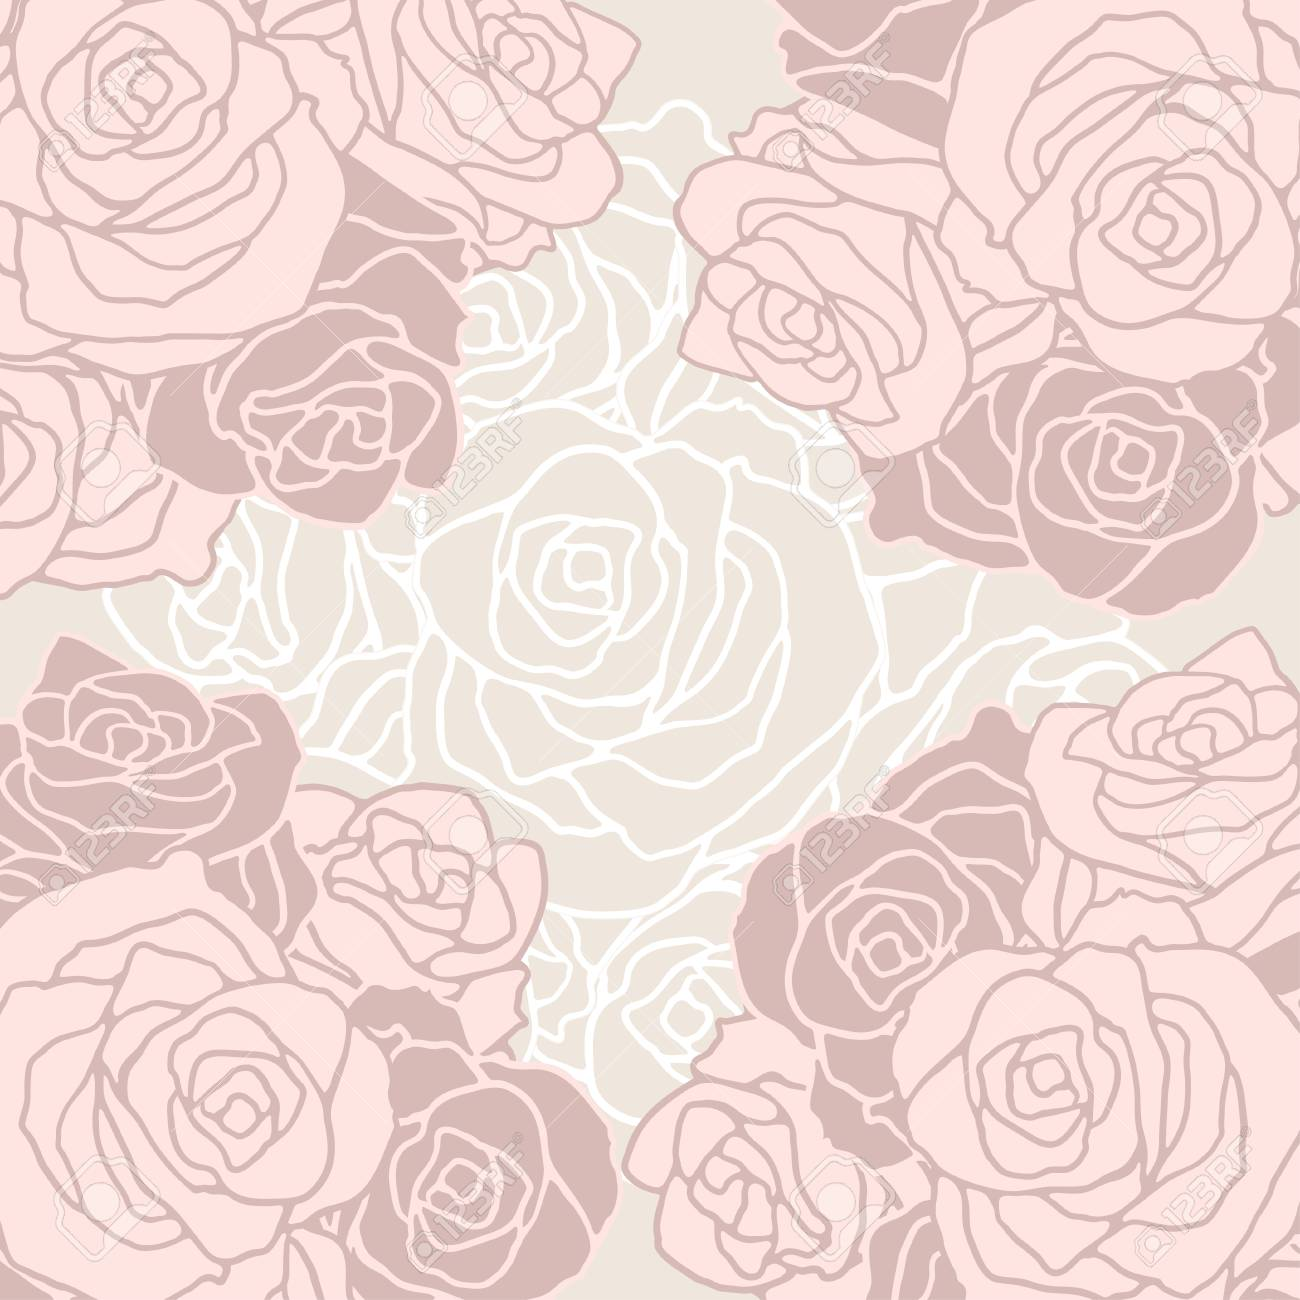 Seamless pattern with flowers roses. Stock Vector - 22380999